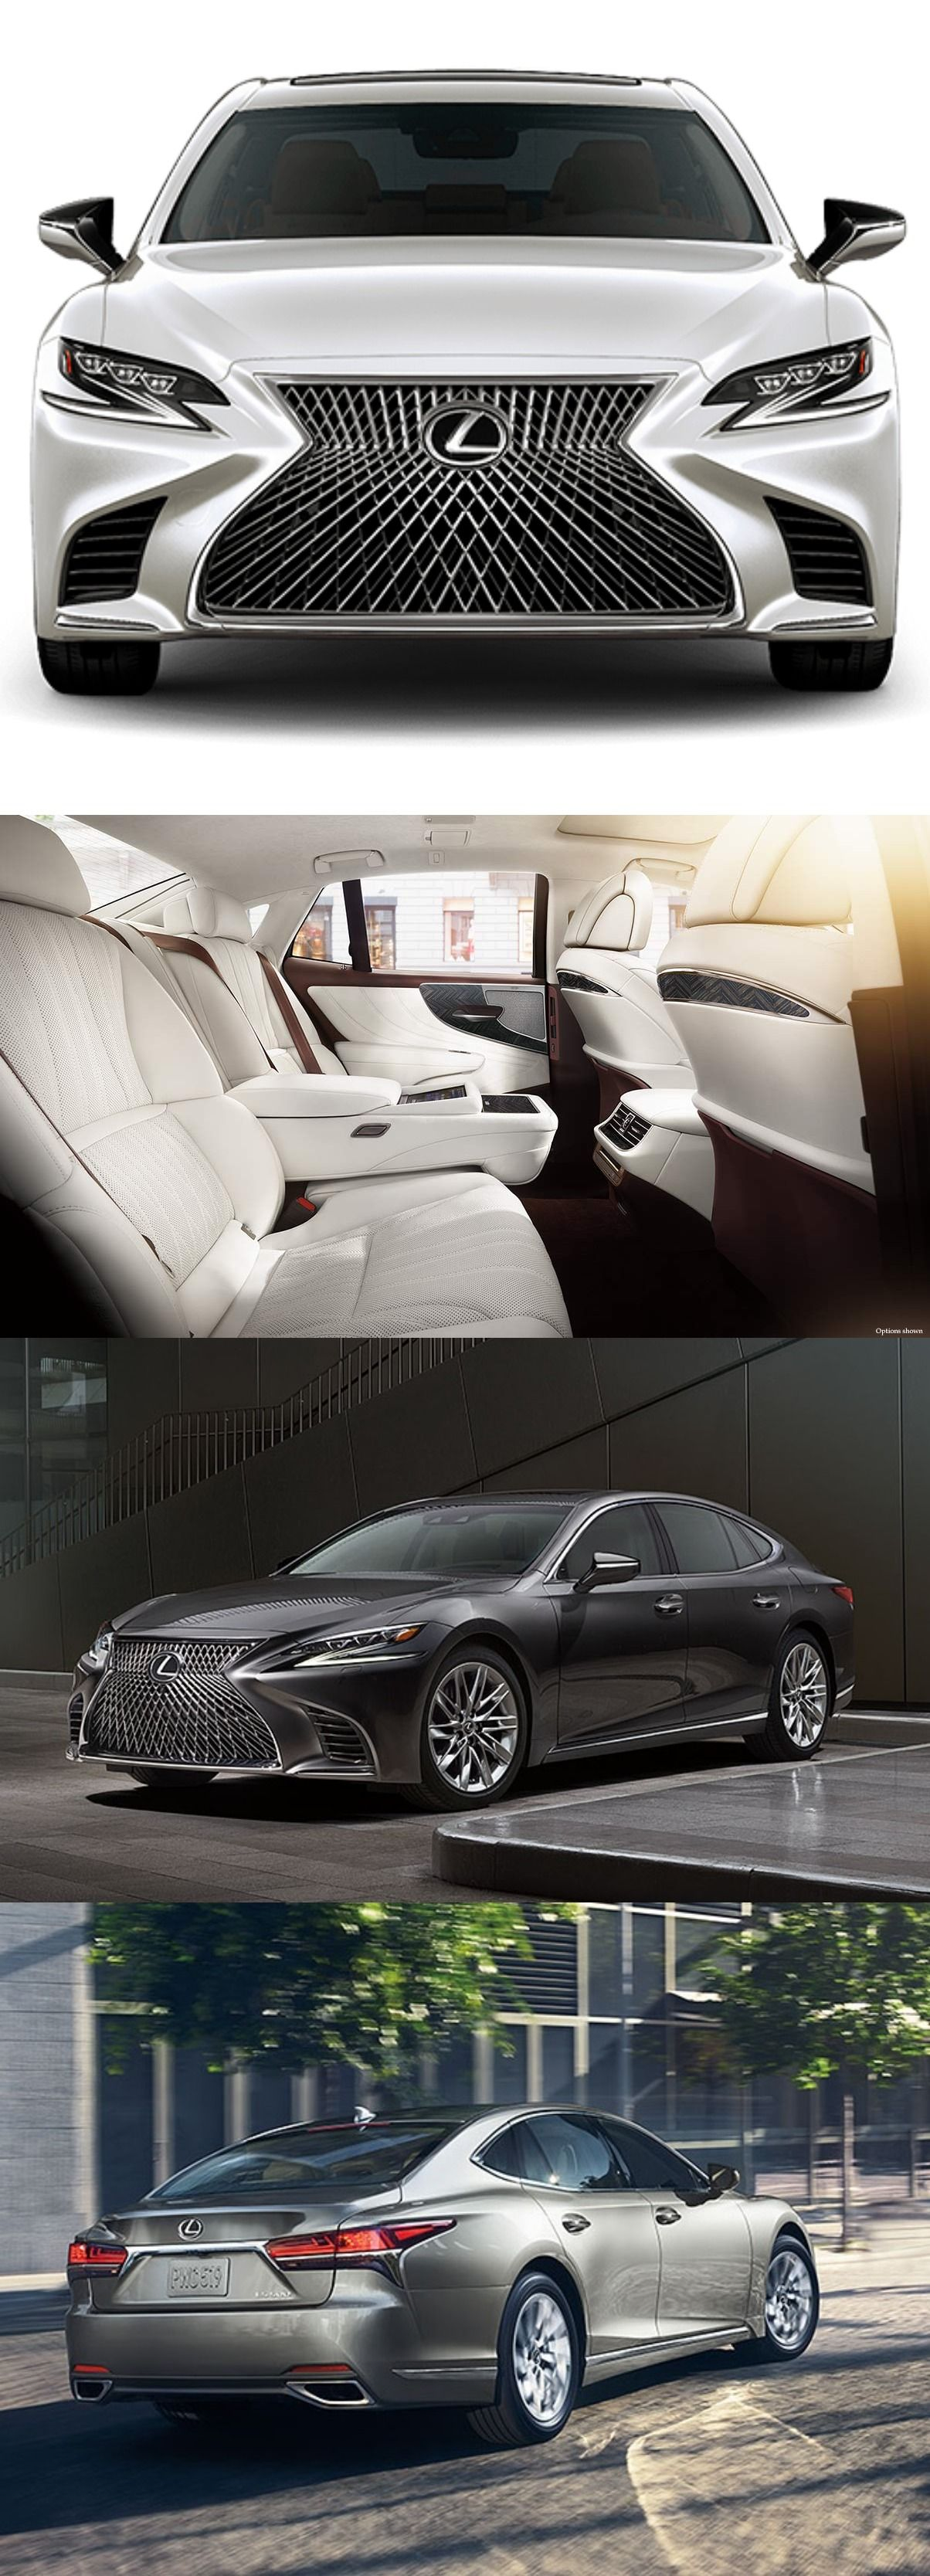 Lexus LS 500h Launched in India, Priced at INR 1.7 crore